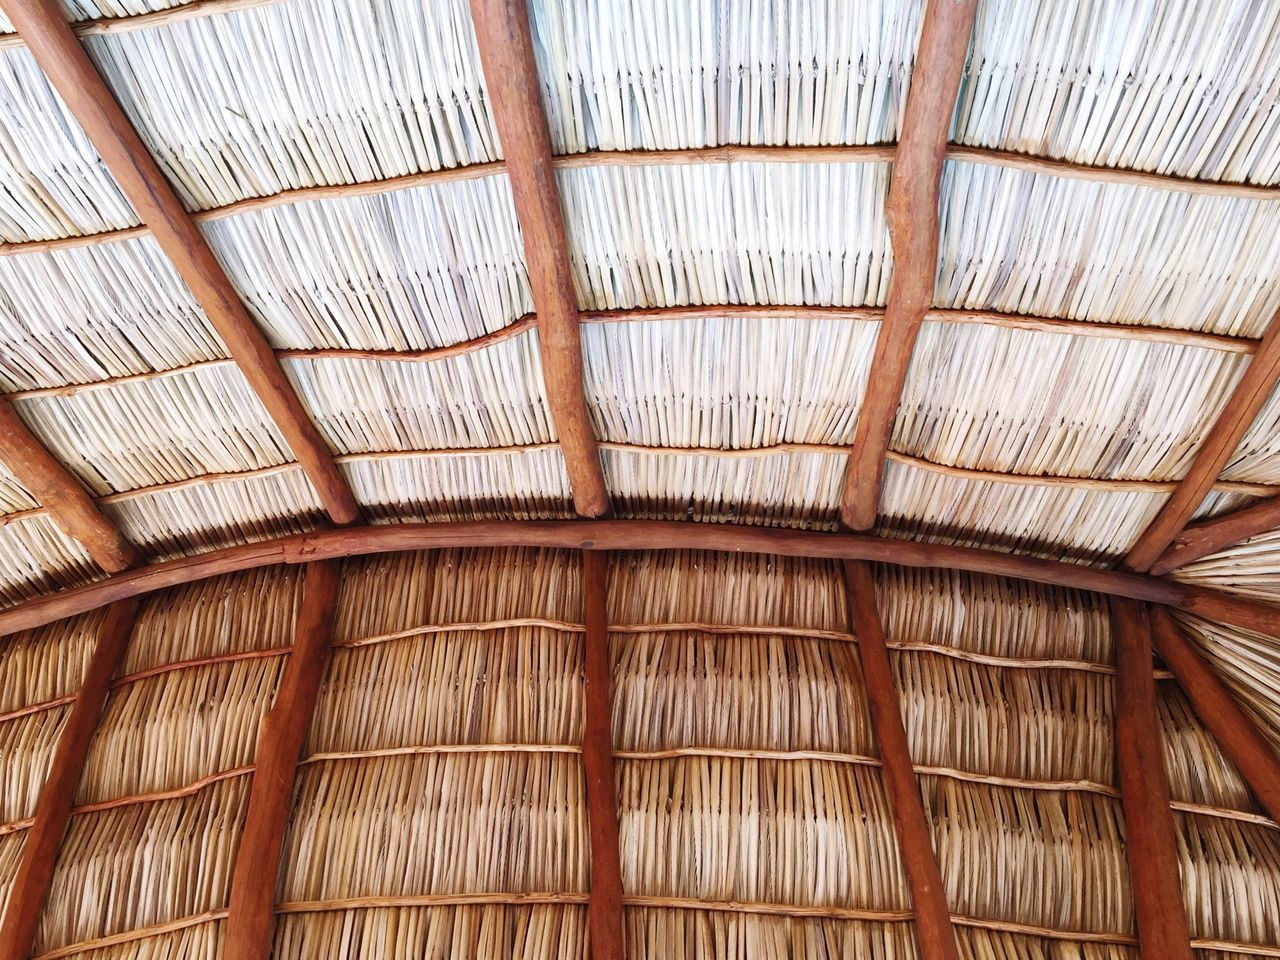 Beauty In Nature Palapa Palms Design Nature_collection Lookingup Pattern Backgrounds No People Weaving Leaves